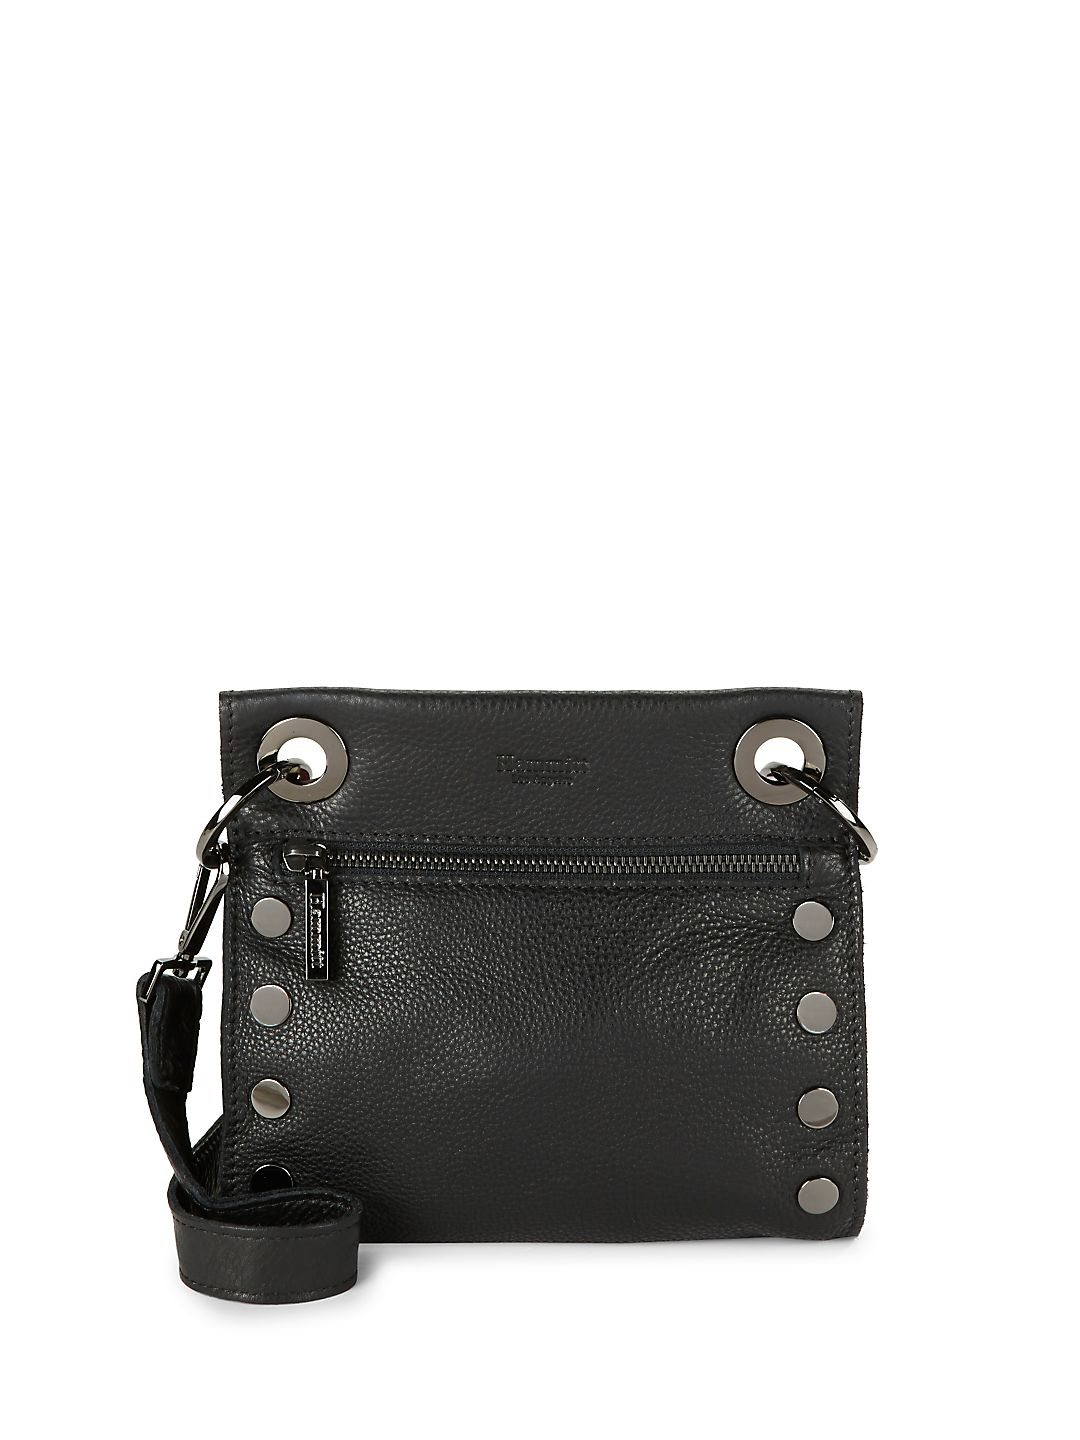 Tony Leather Crossbody Bag